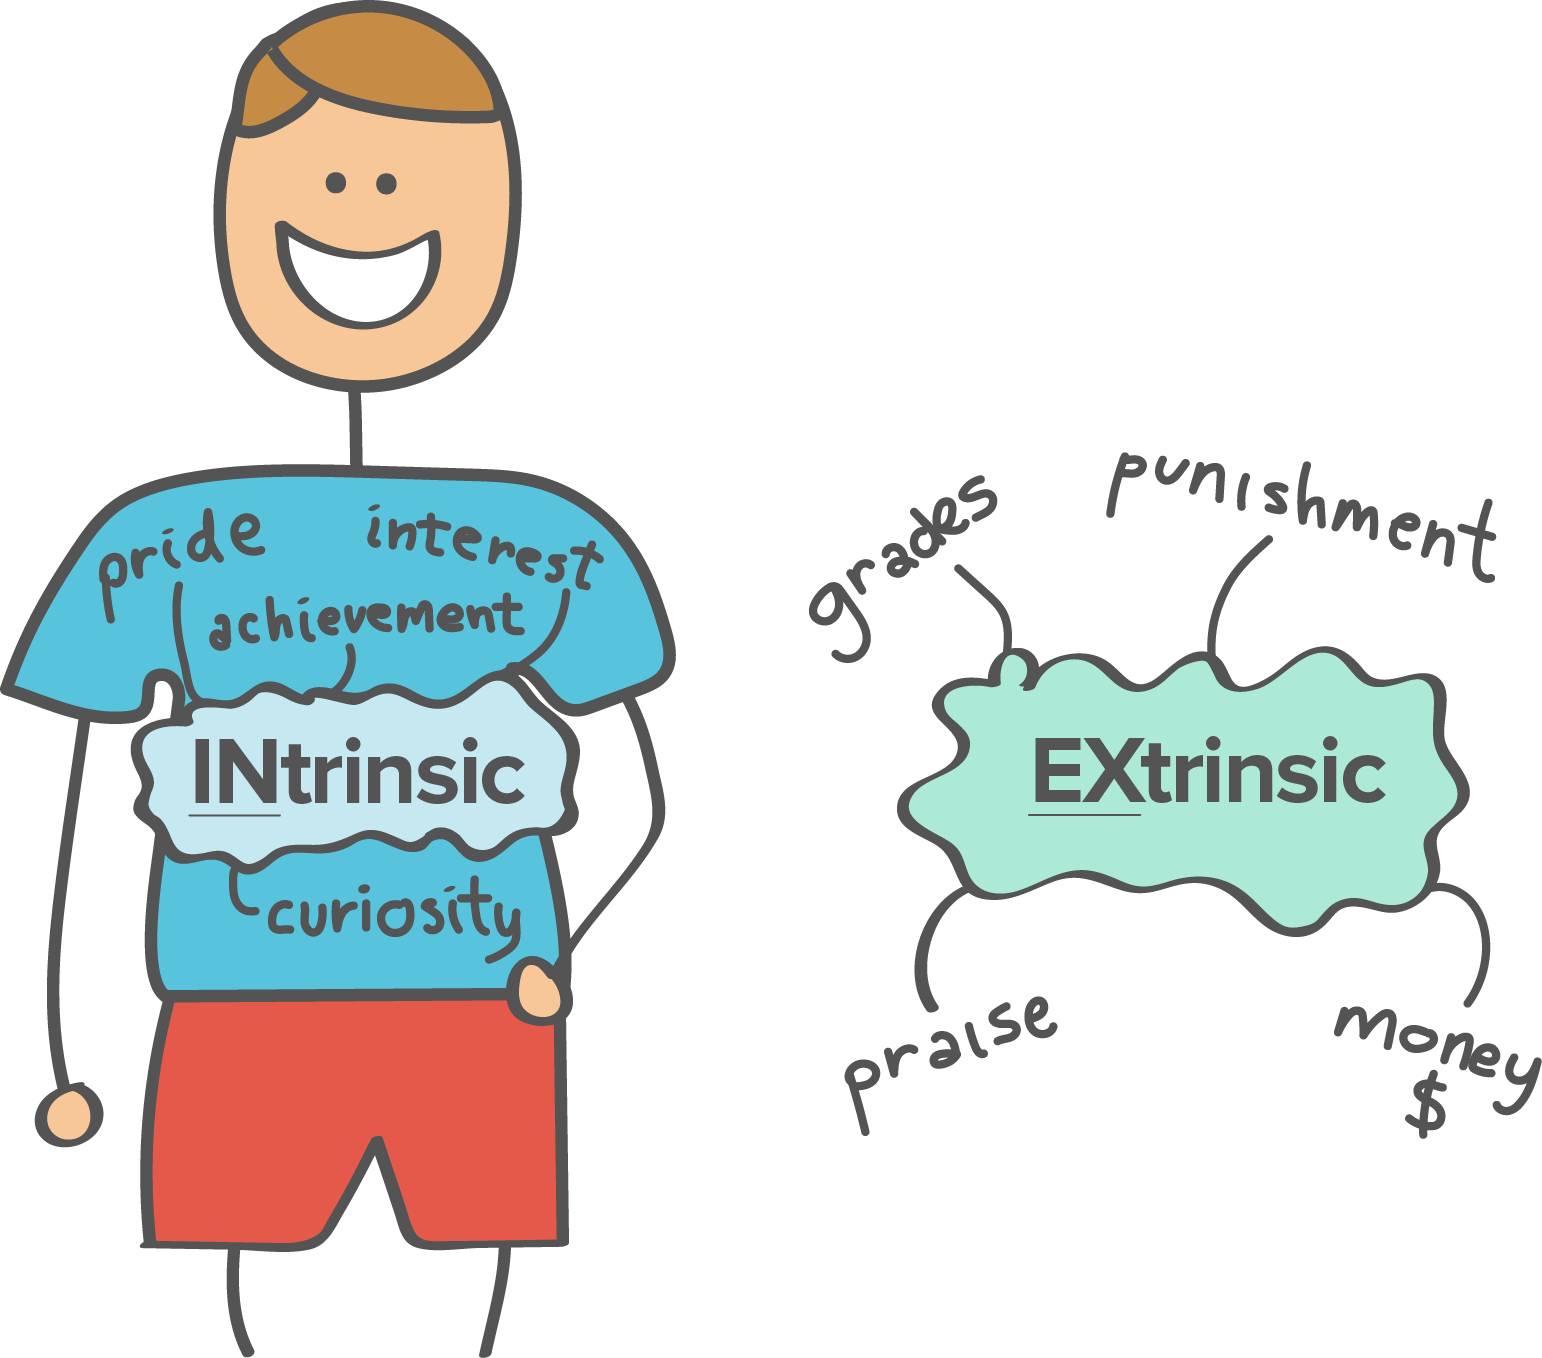 Motivation clipart possibility. What is intrinsic